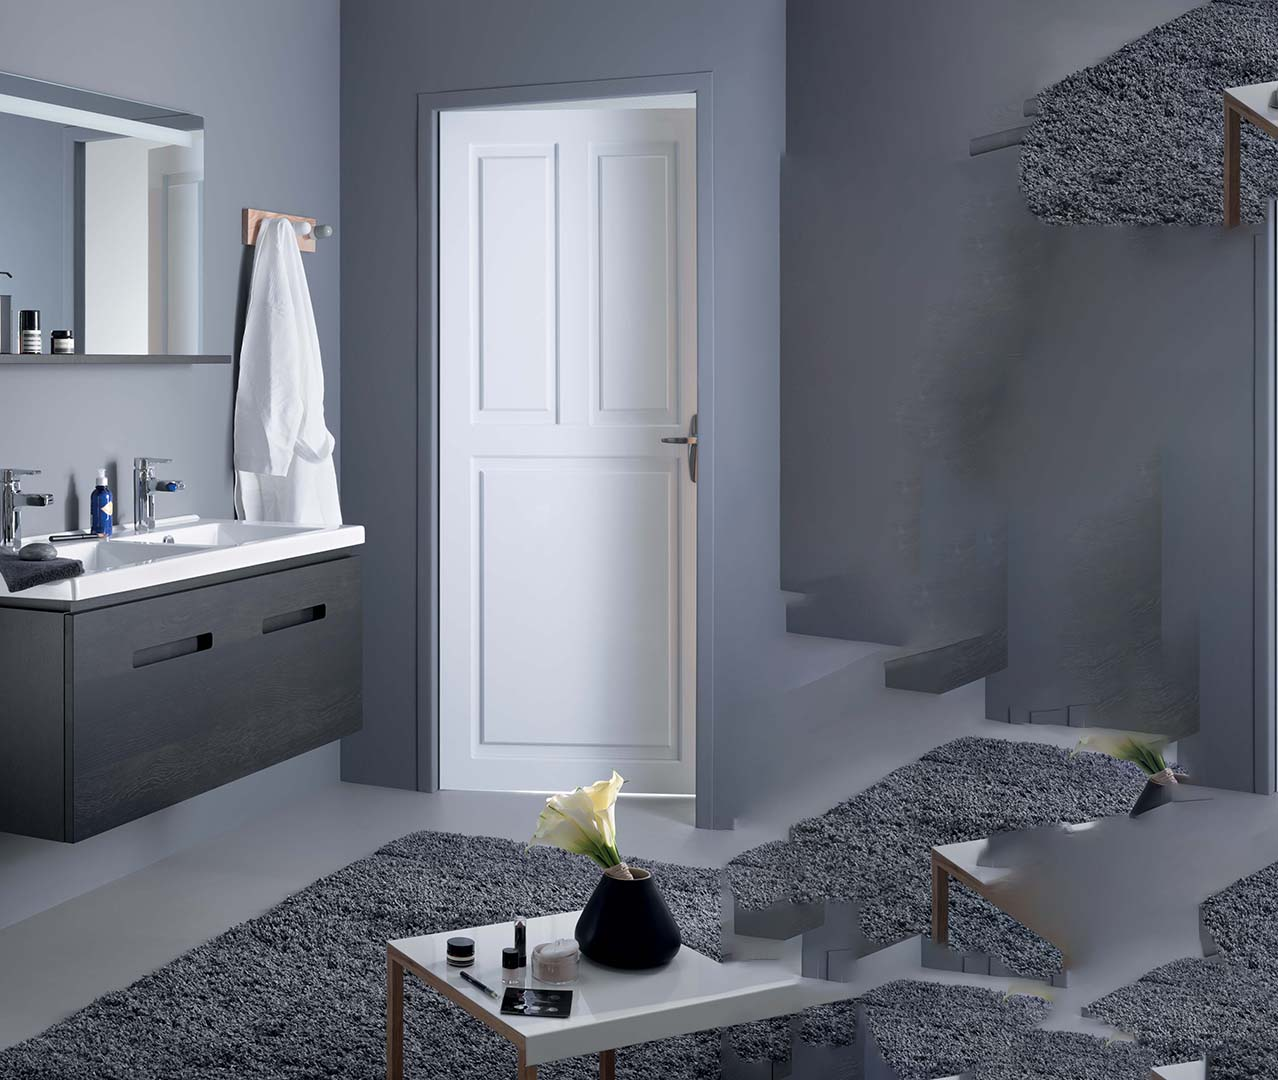 gamme essentiel meubles salle de bain zen sanijura. Black Bedroom Furniture Sets. Home Design Ideas